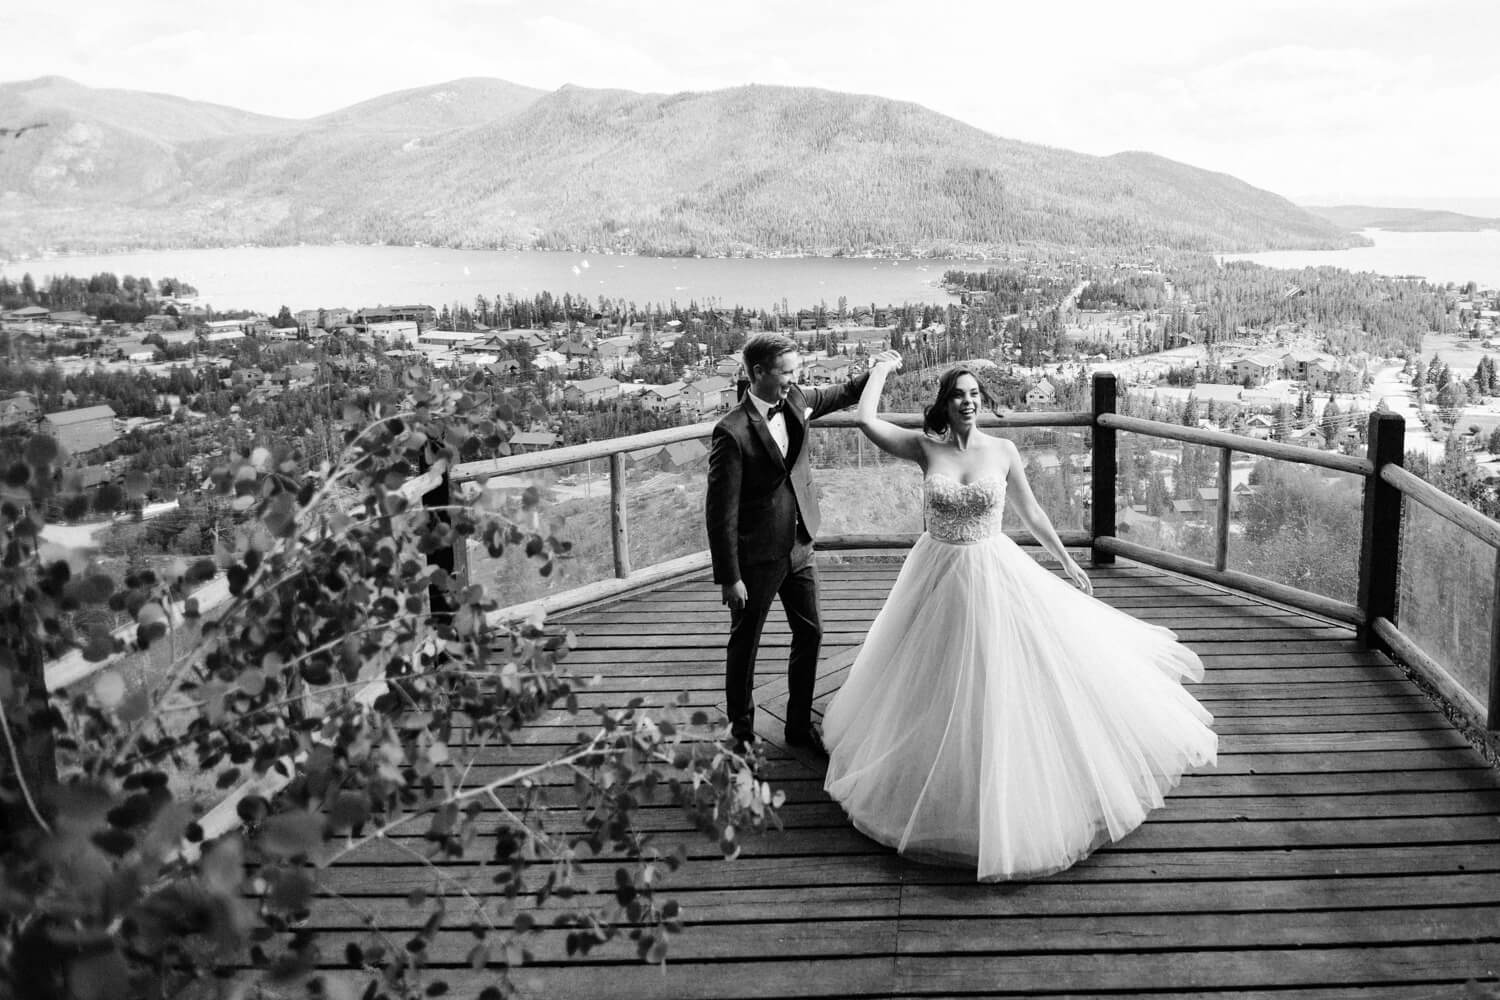 bride and groom dancing in front of beautiful scenery